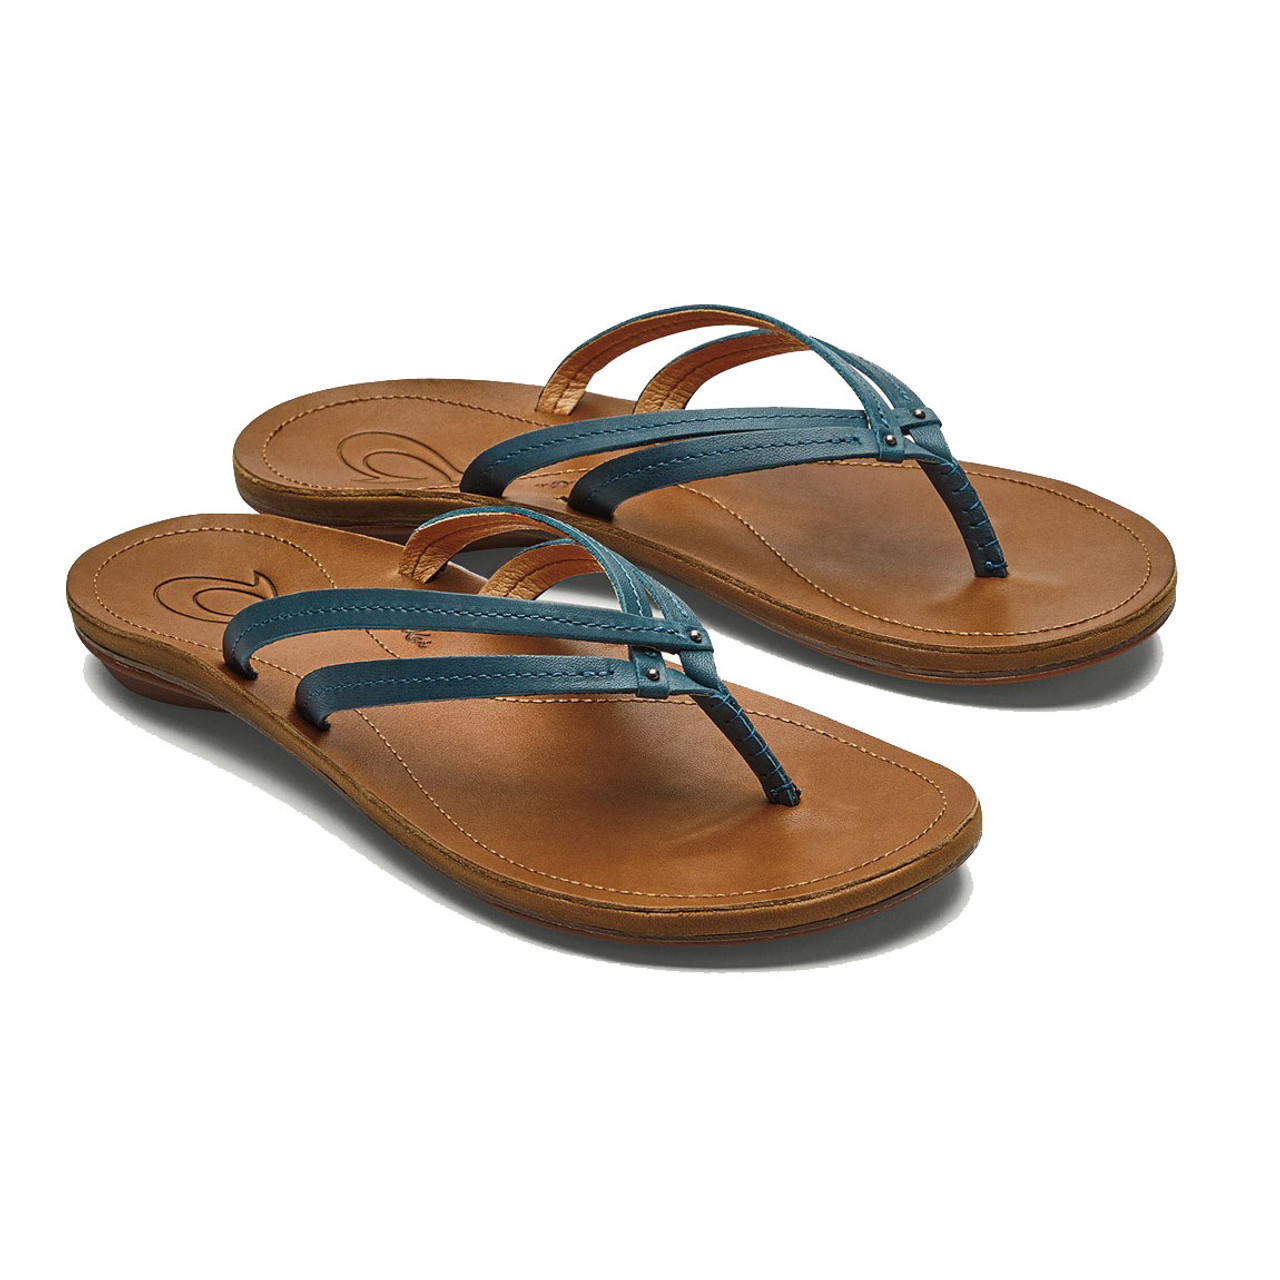 800ad25ca2c8 OluKai Women s Flip Flops - U I - Teal Sahara - Surf and Dirt